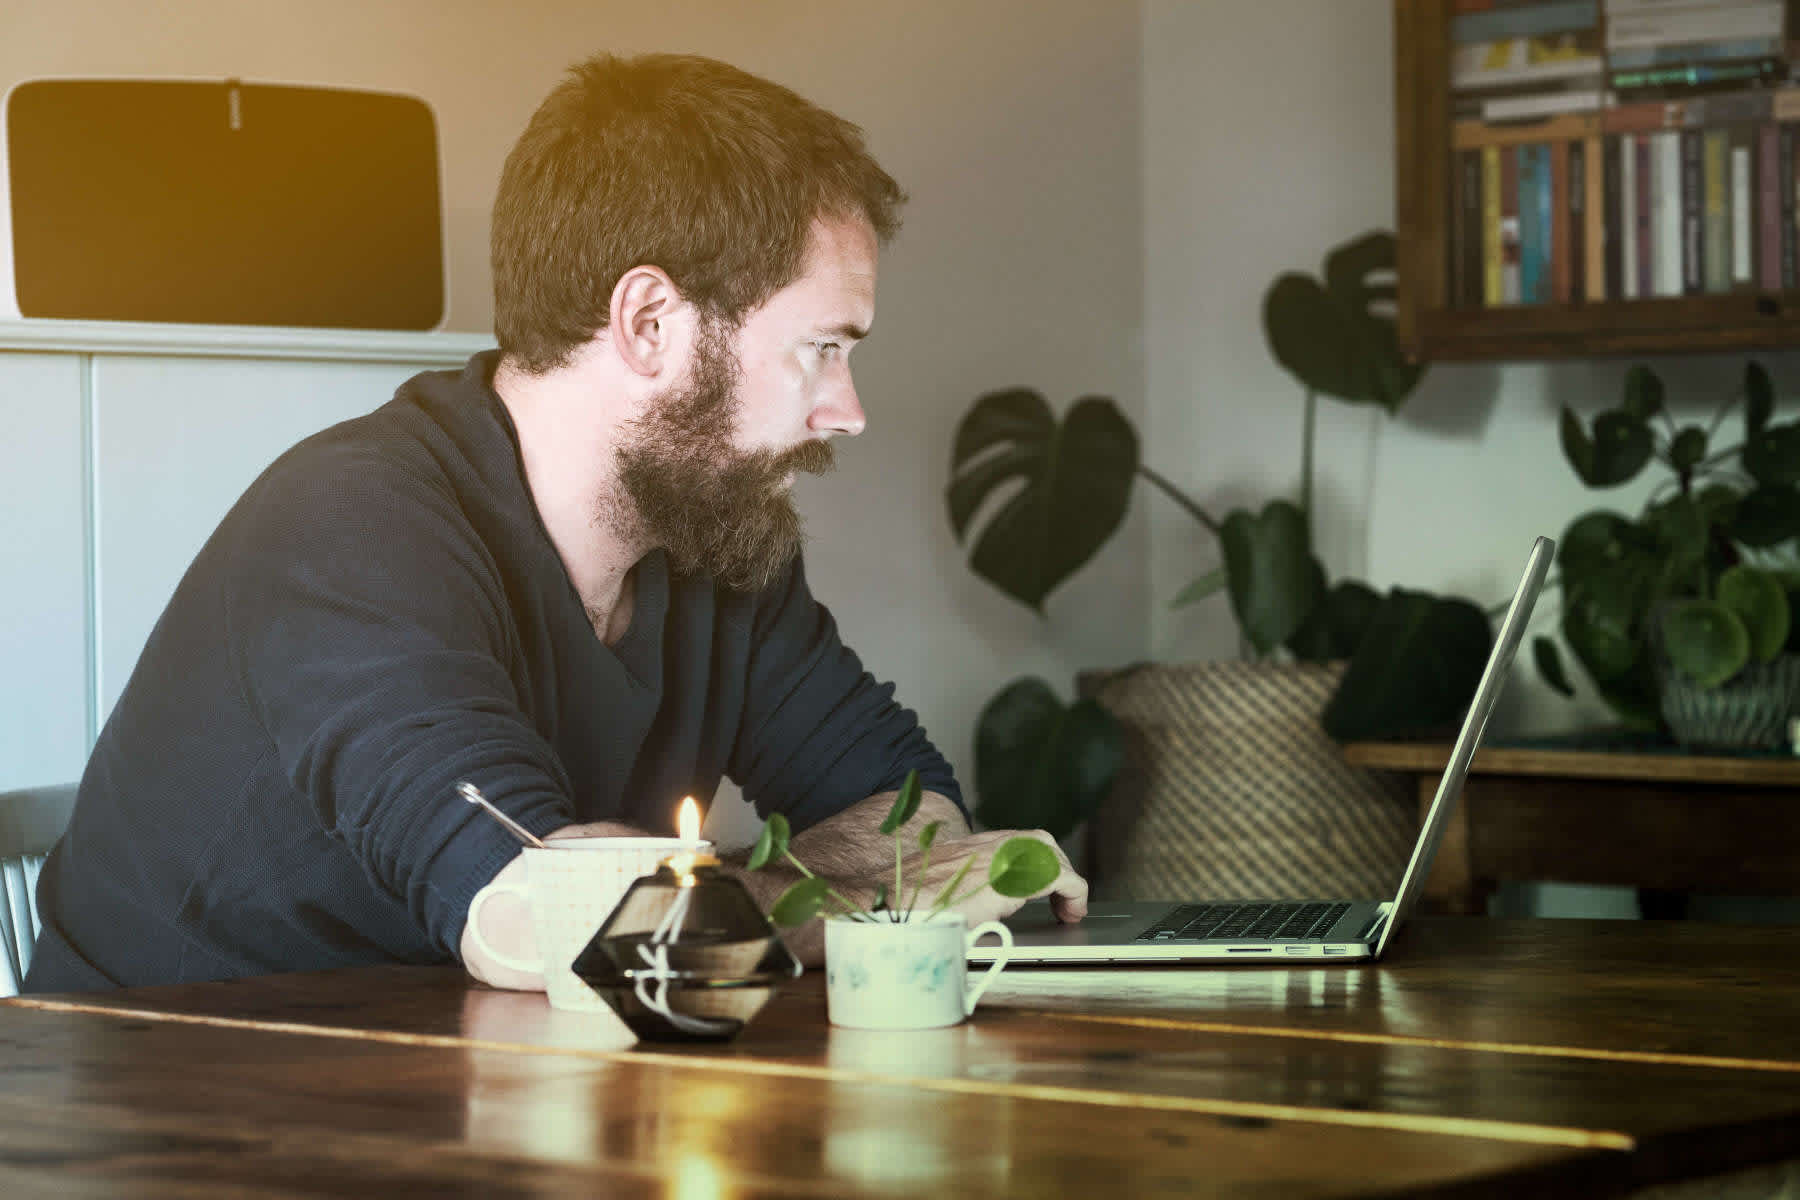 A man is sitting at a kitchen table working on his computer.